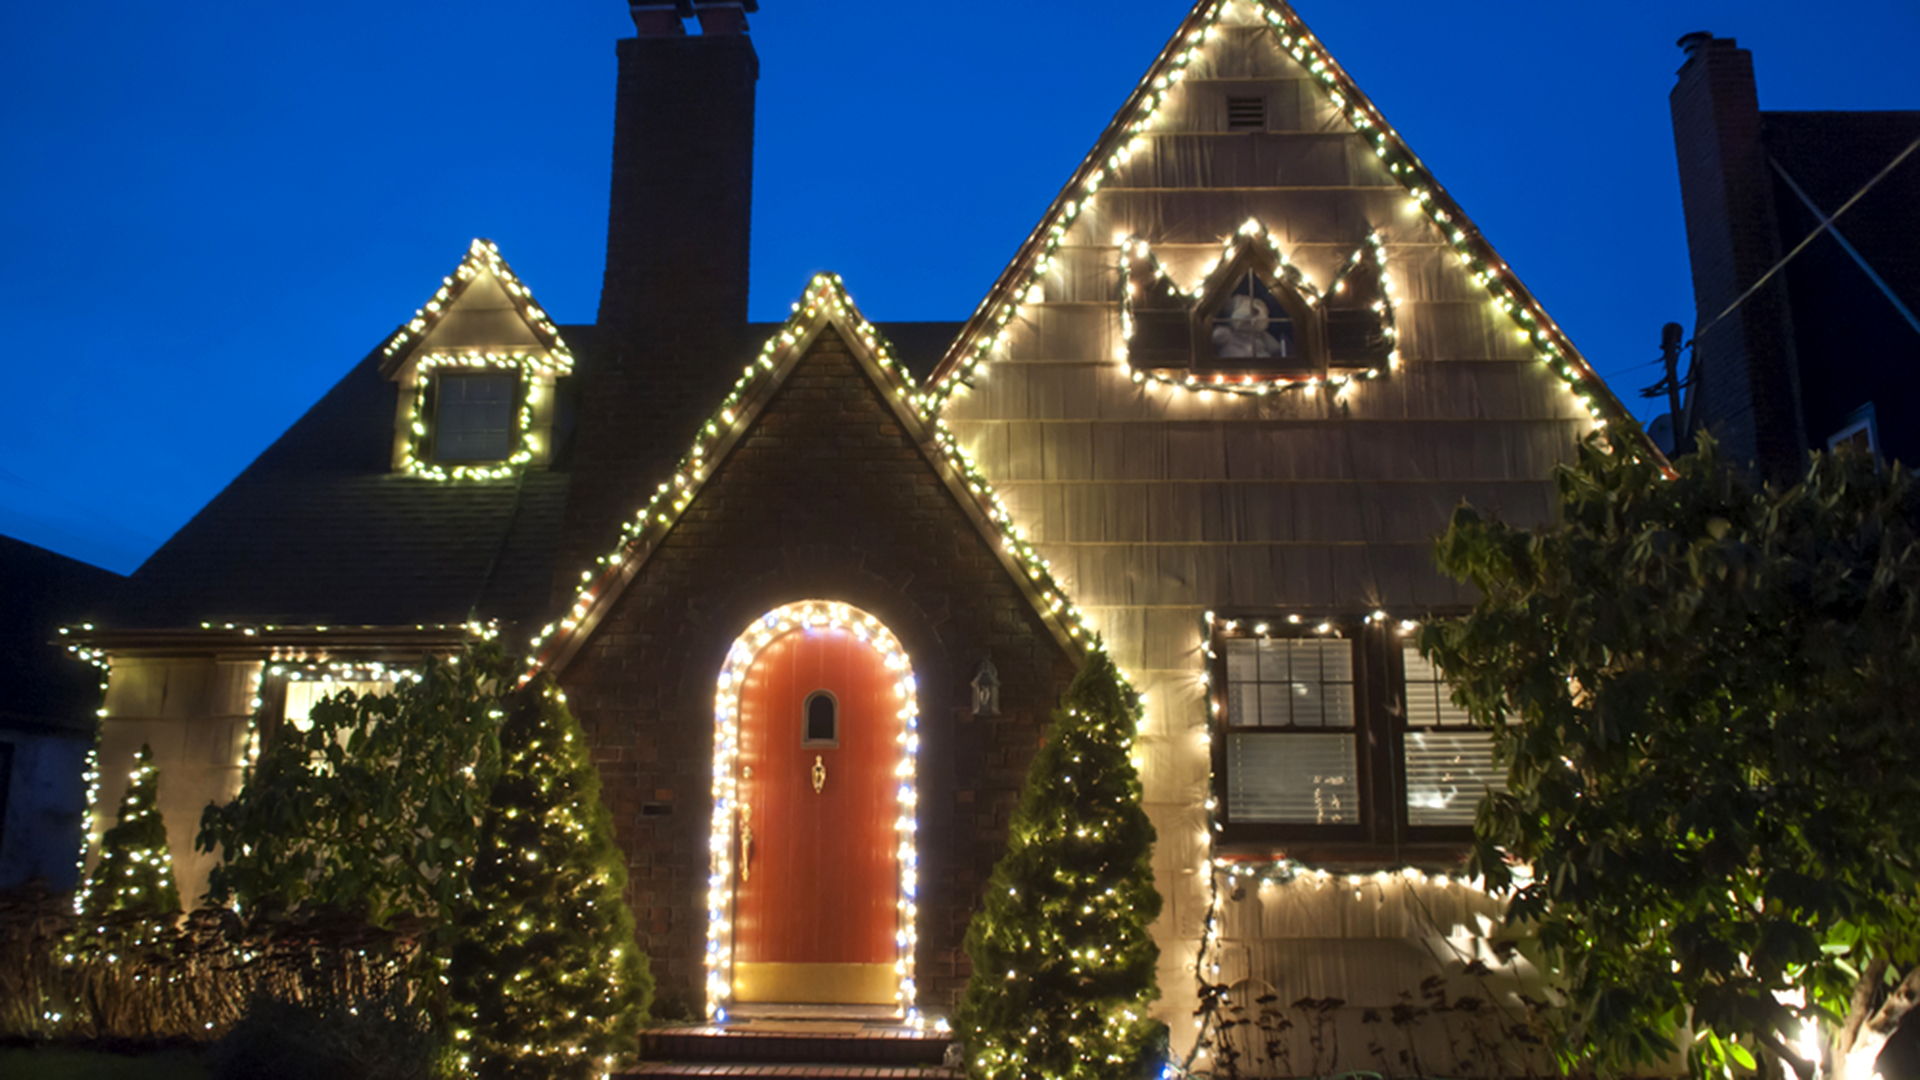 How Can I Avoid Blowing A Fuse With Christmas Lights Answers To Your Home Questions